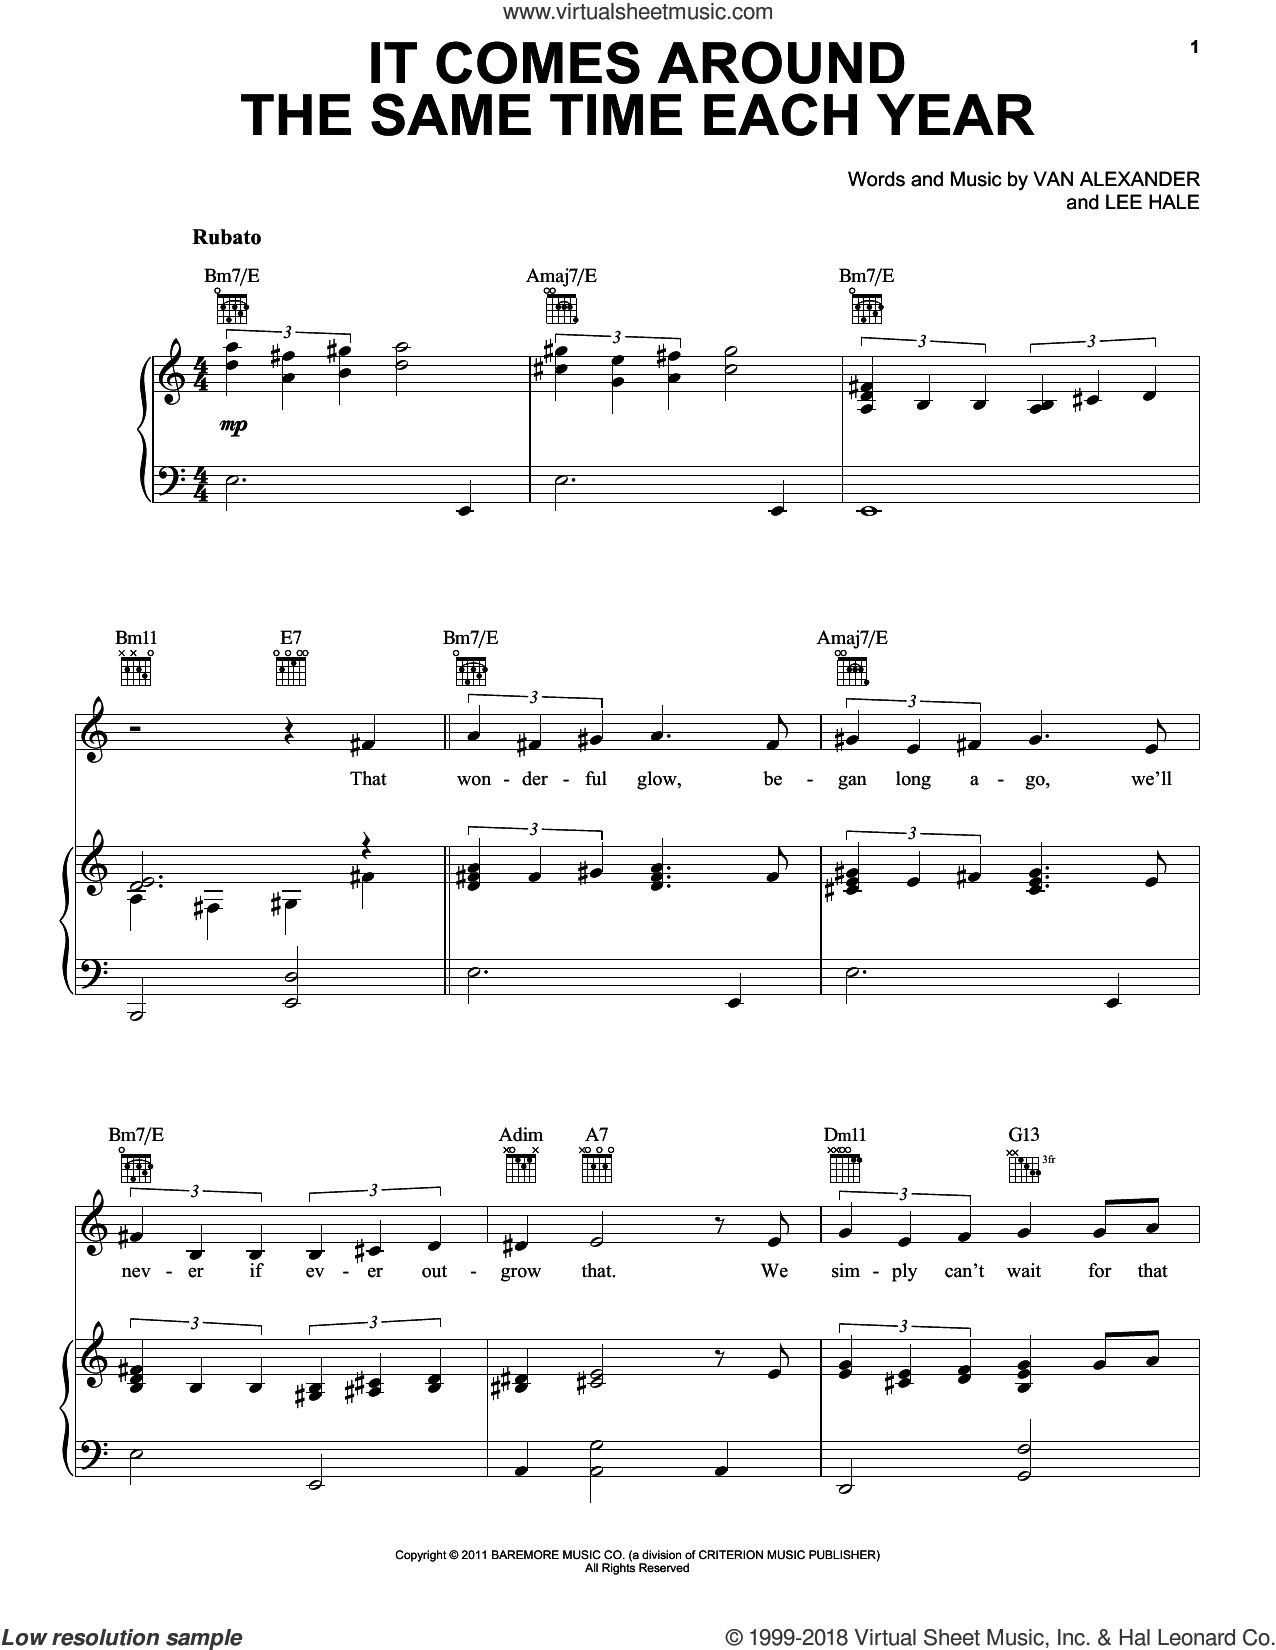 It Comes Around The Same Time Each Year sheet music for voice, piano or guitar by Michael Feinstein